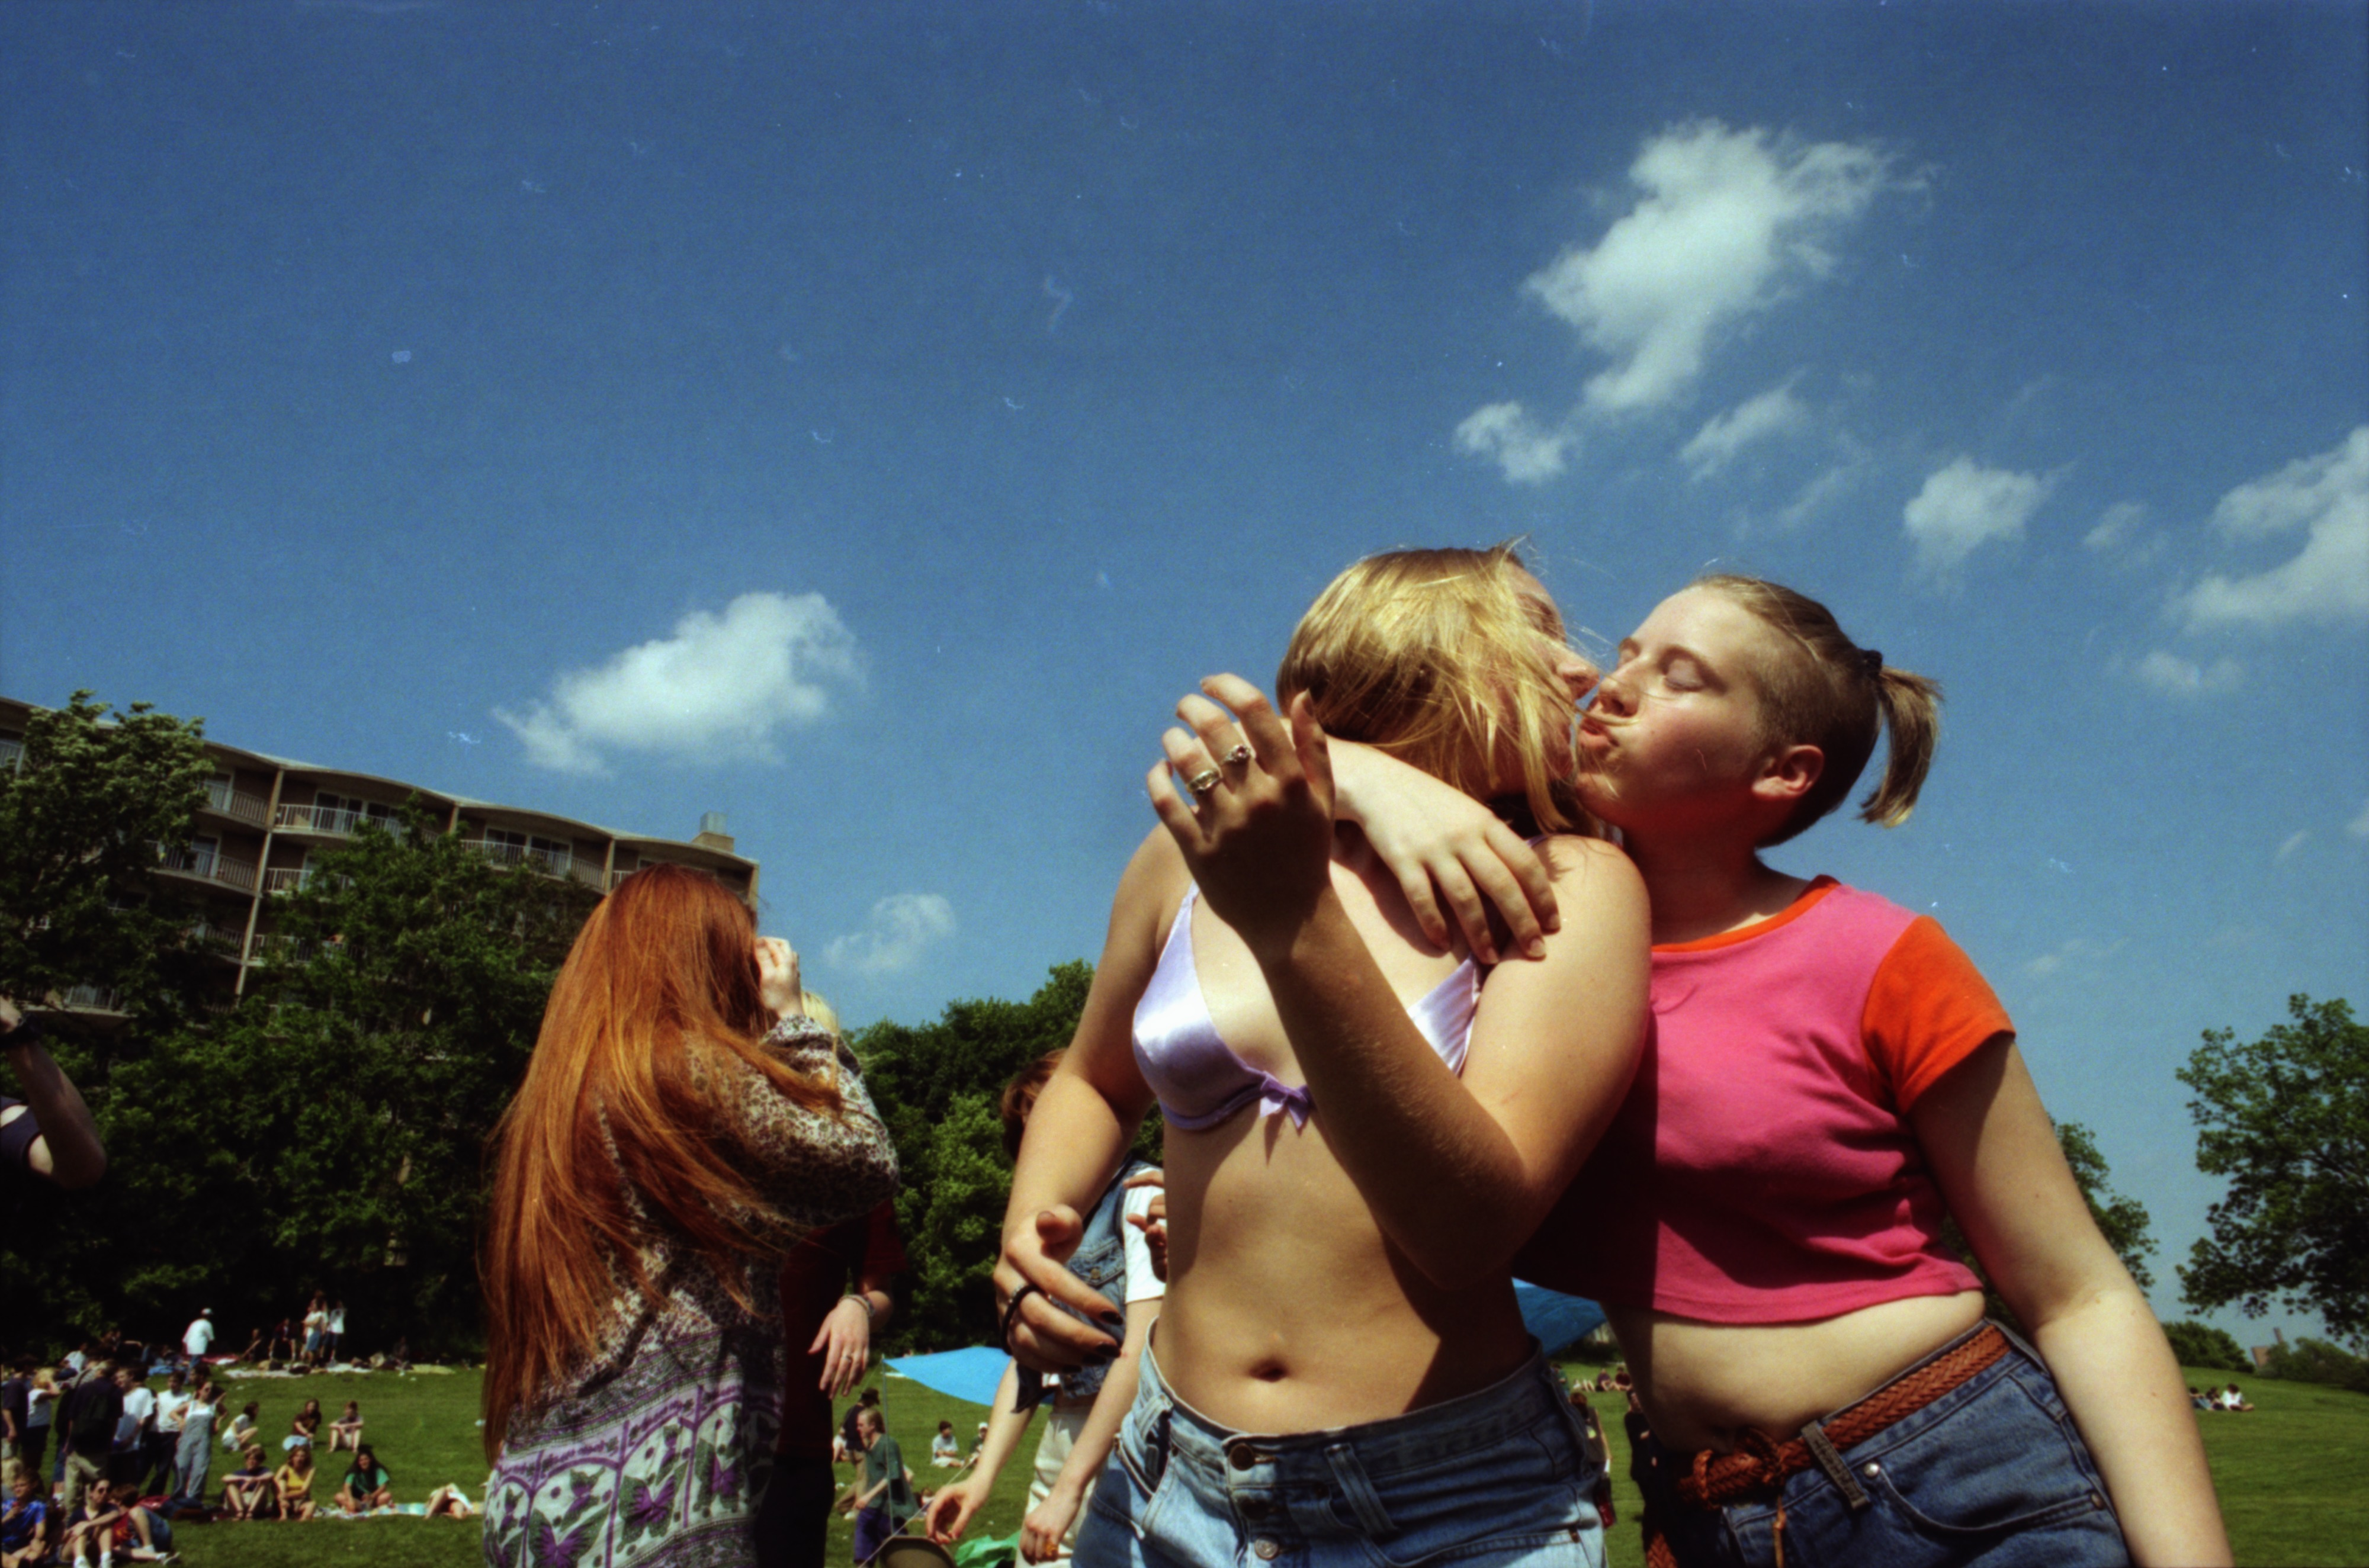 Community High School students celebrate at Comstock, West Park, June 13, 1996 image